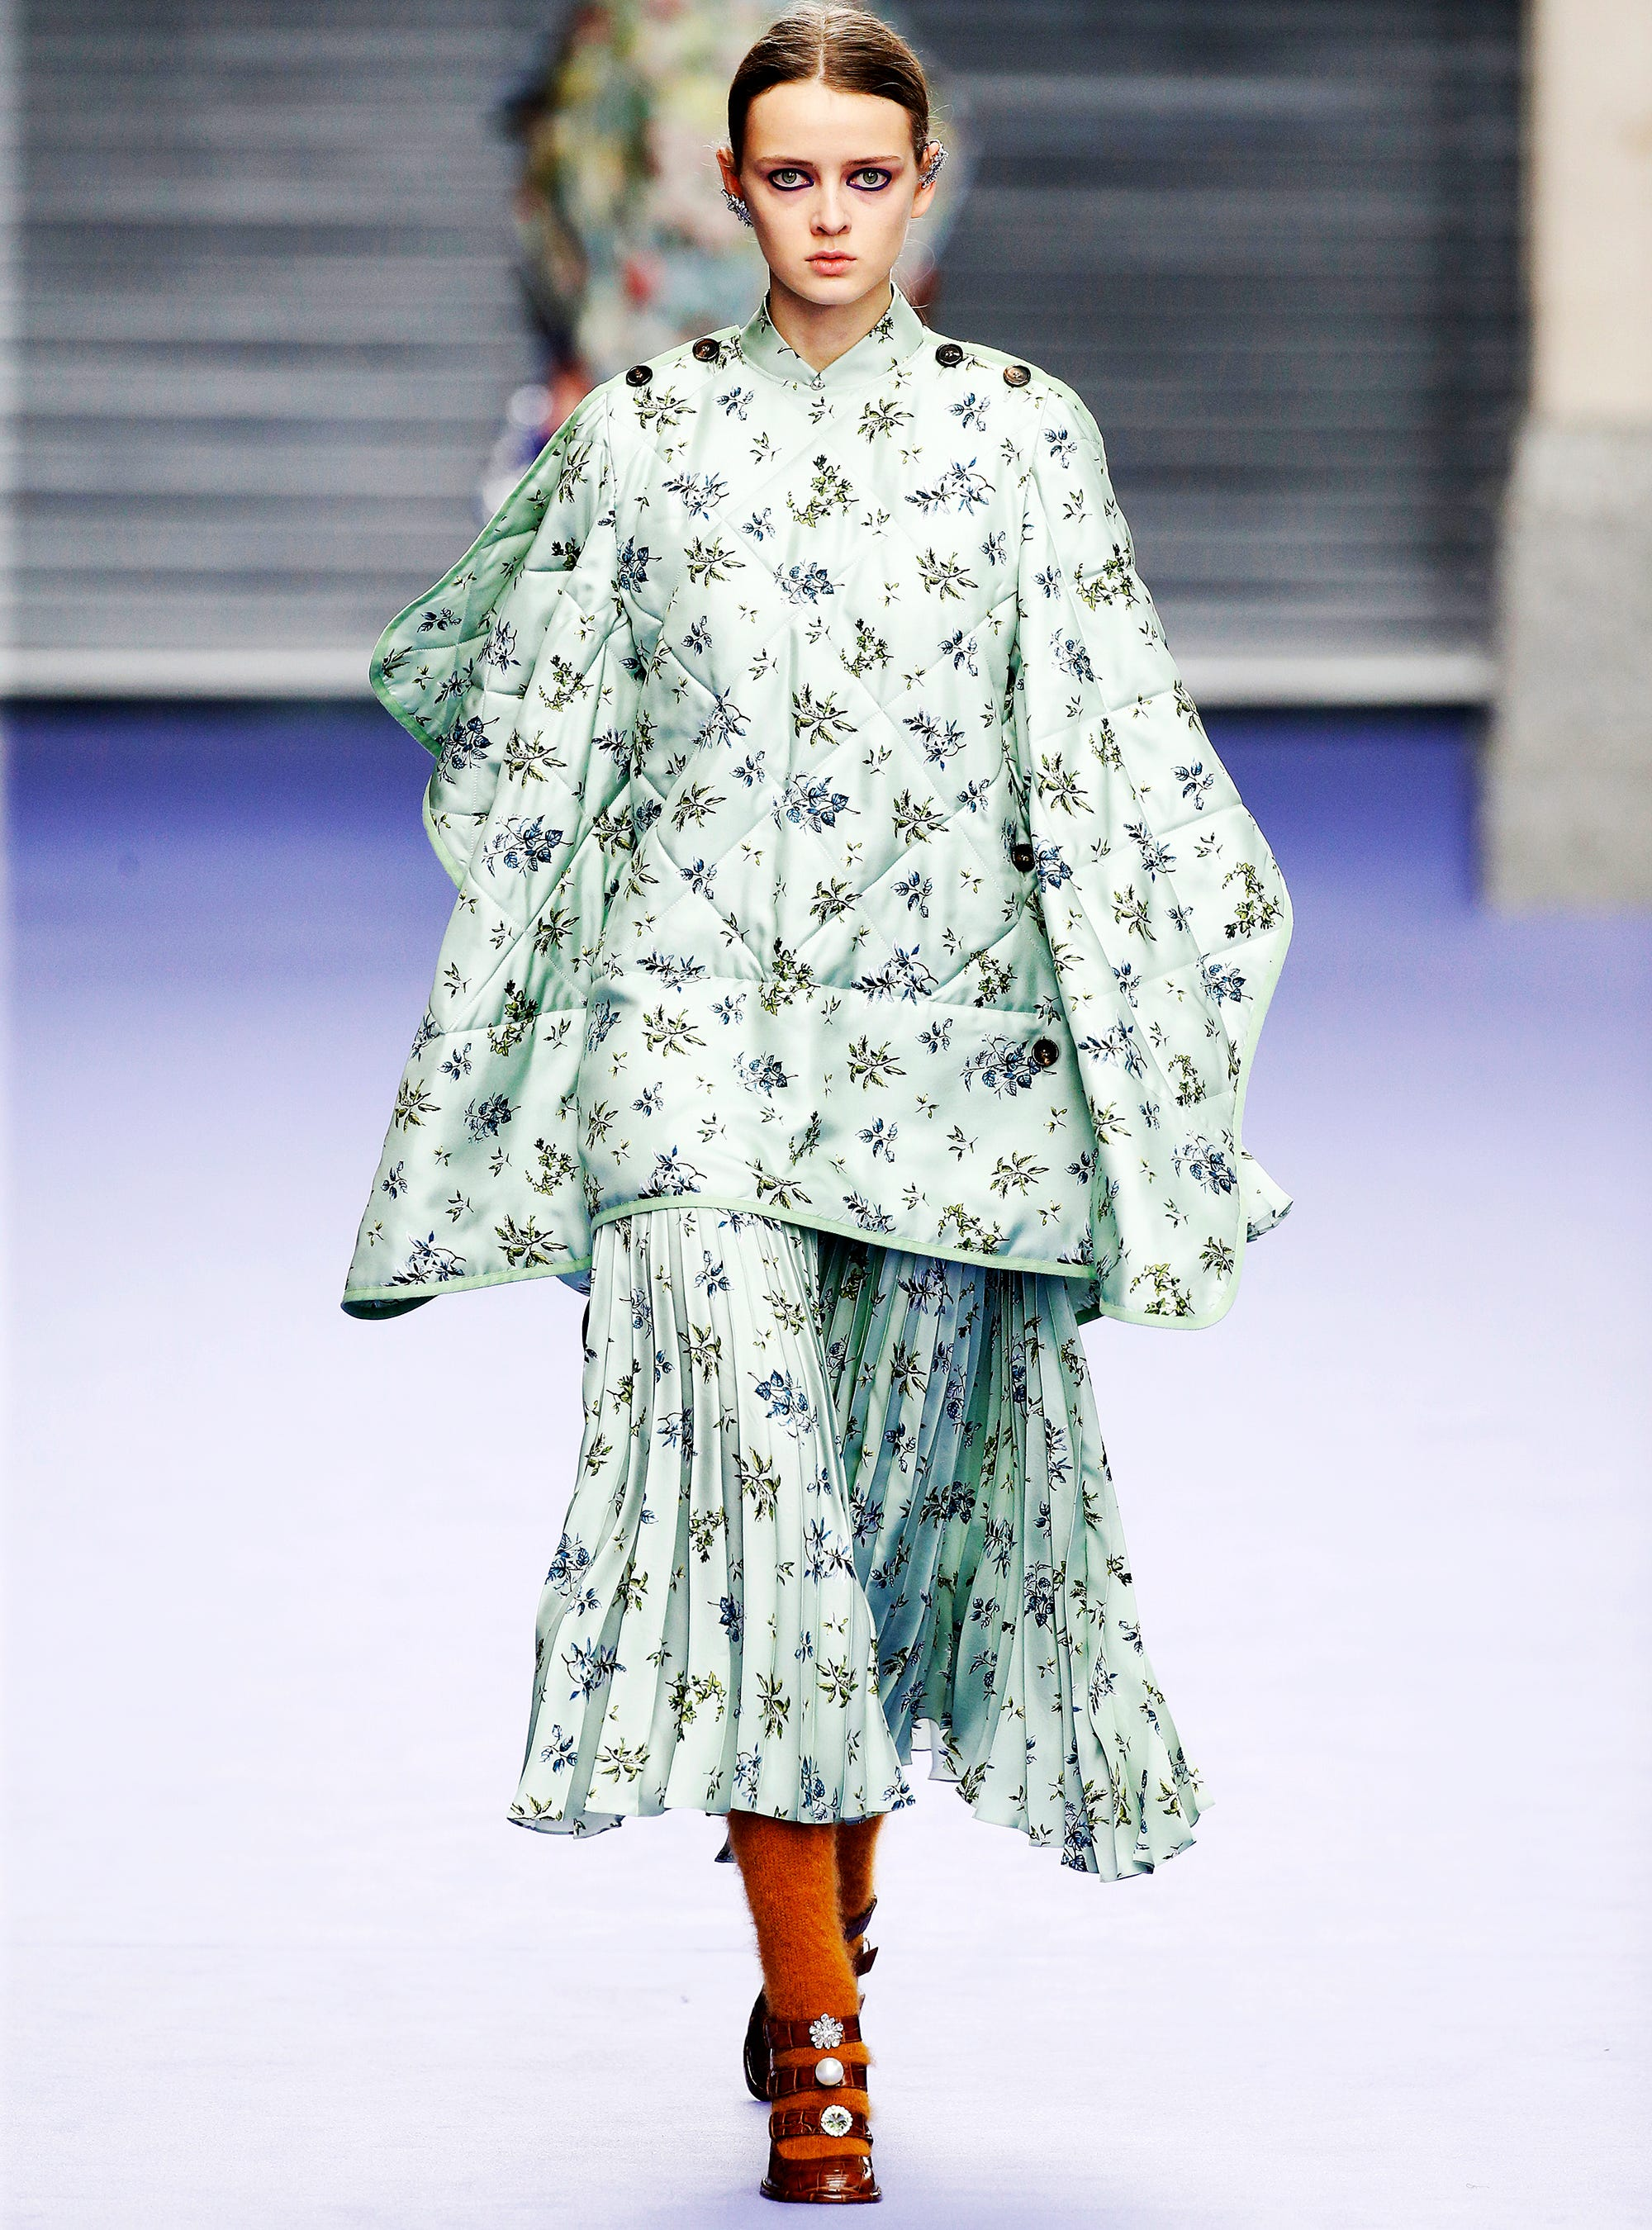 Mulberry Duvet Coat Trend Fall 2017 London Fashion Week 7114074e55df9